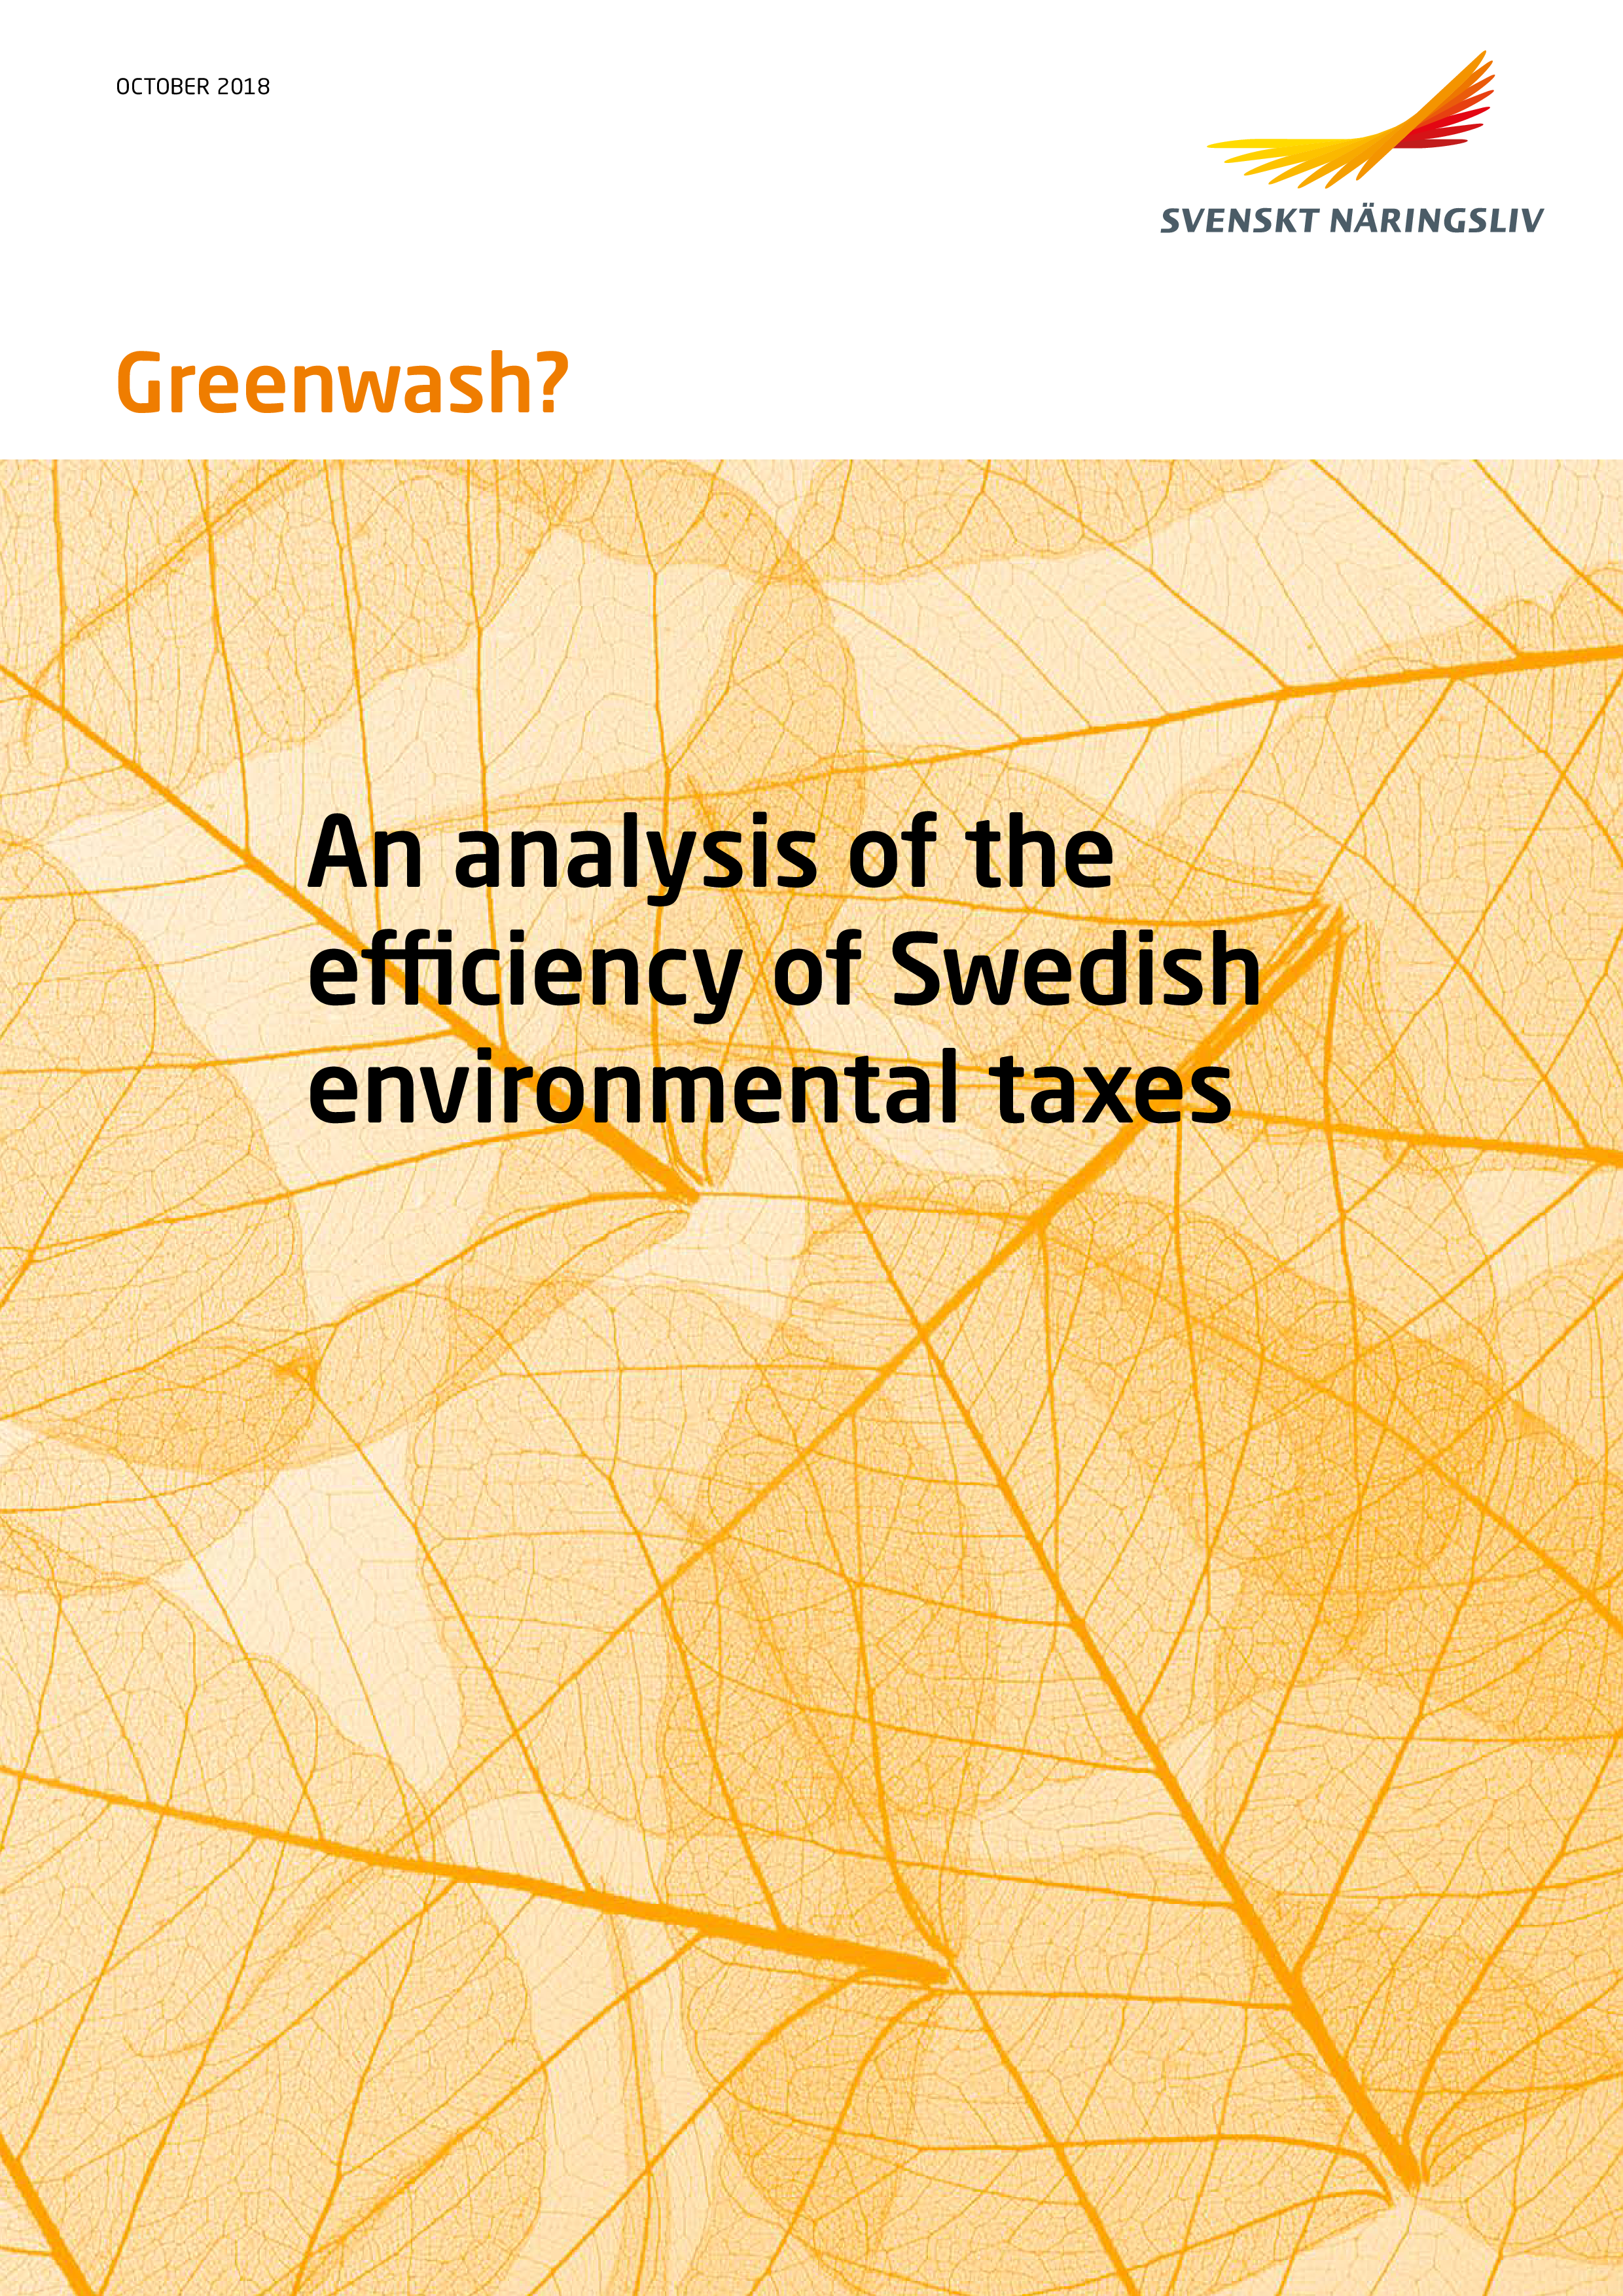 Greenwash_An_analysis_of_the_efficiency_of_Swedish_environmental_taxes.pdf